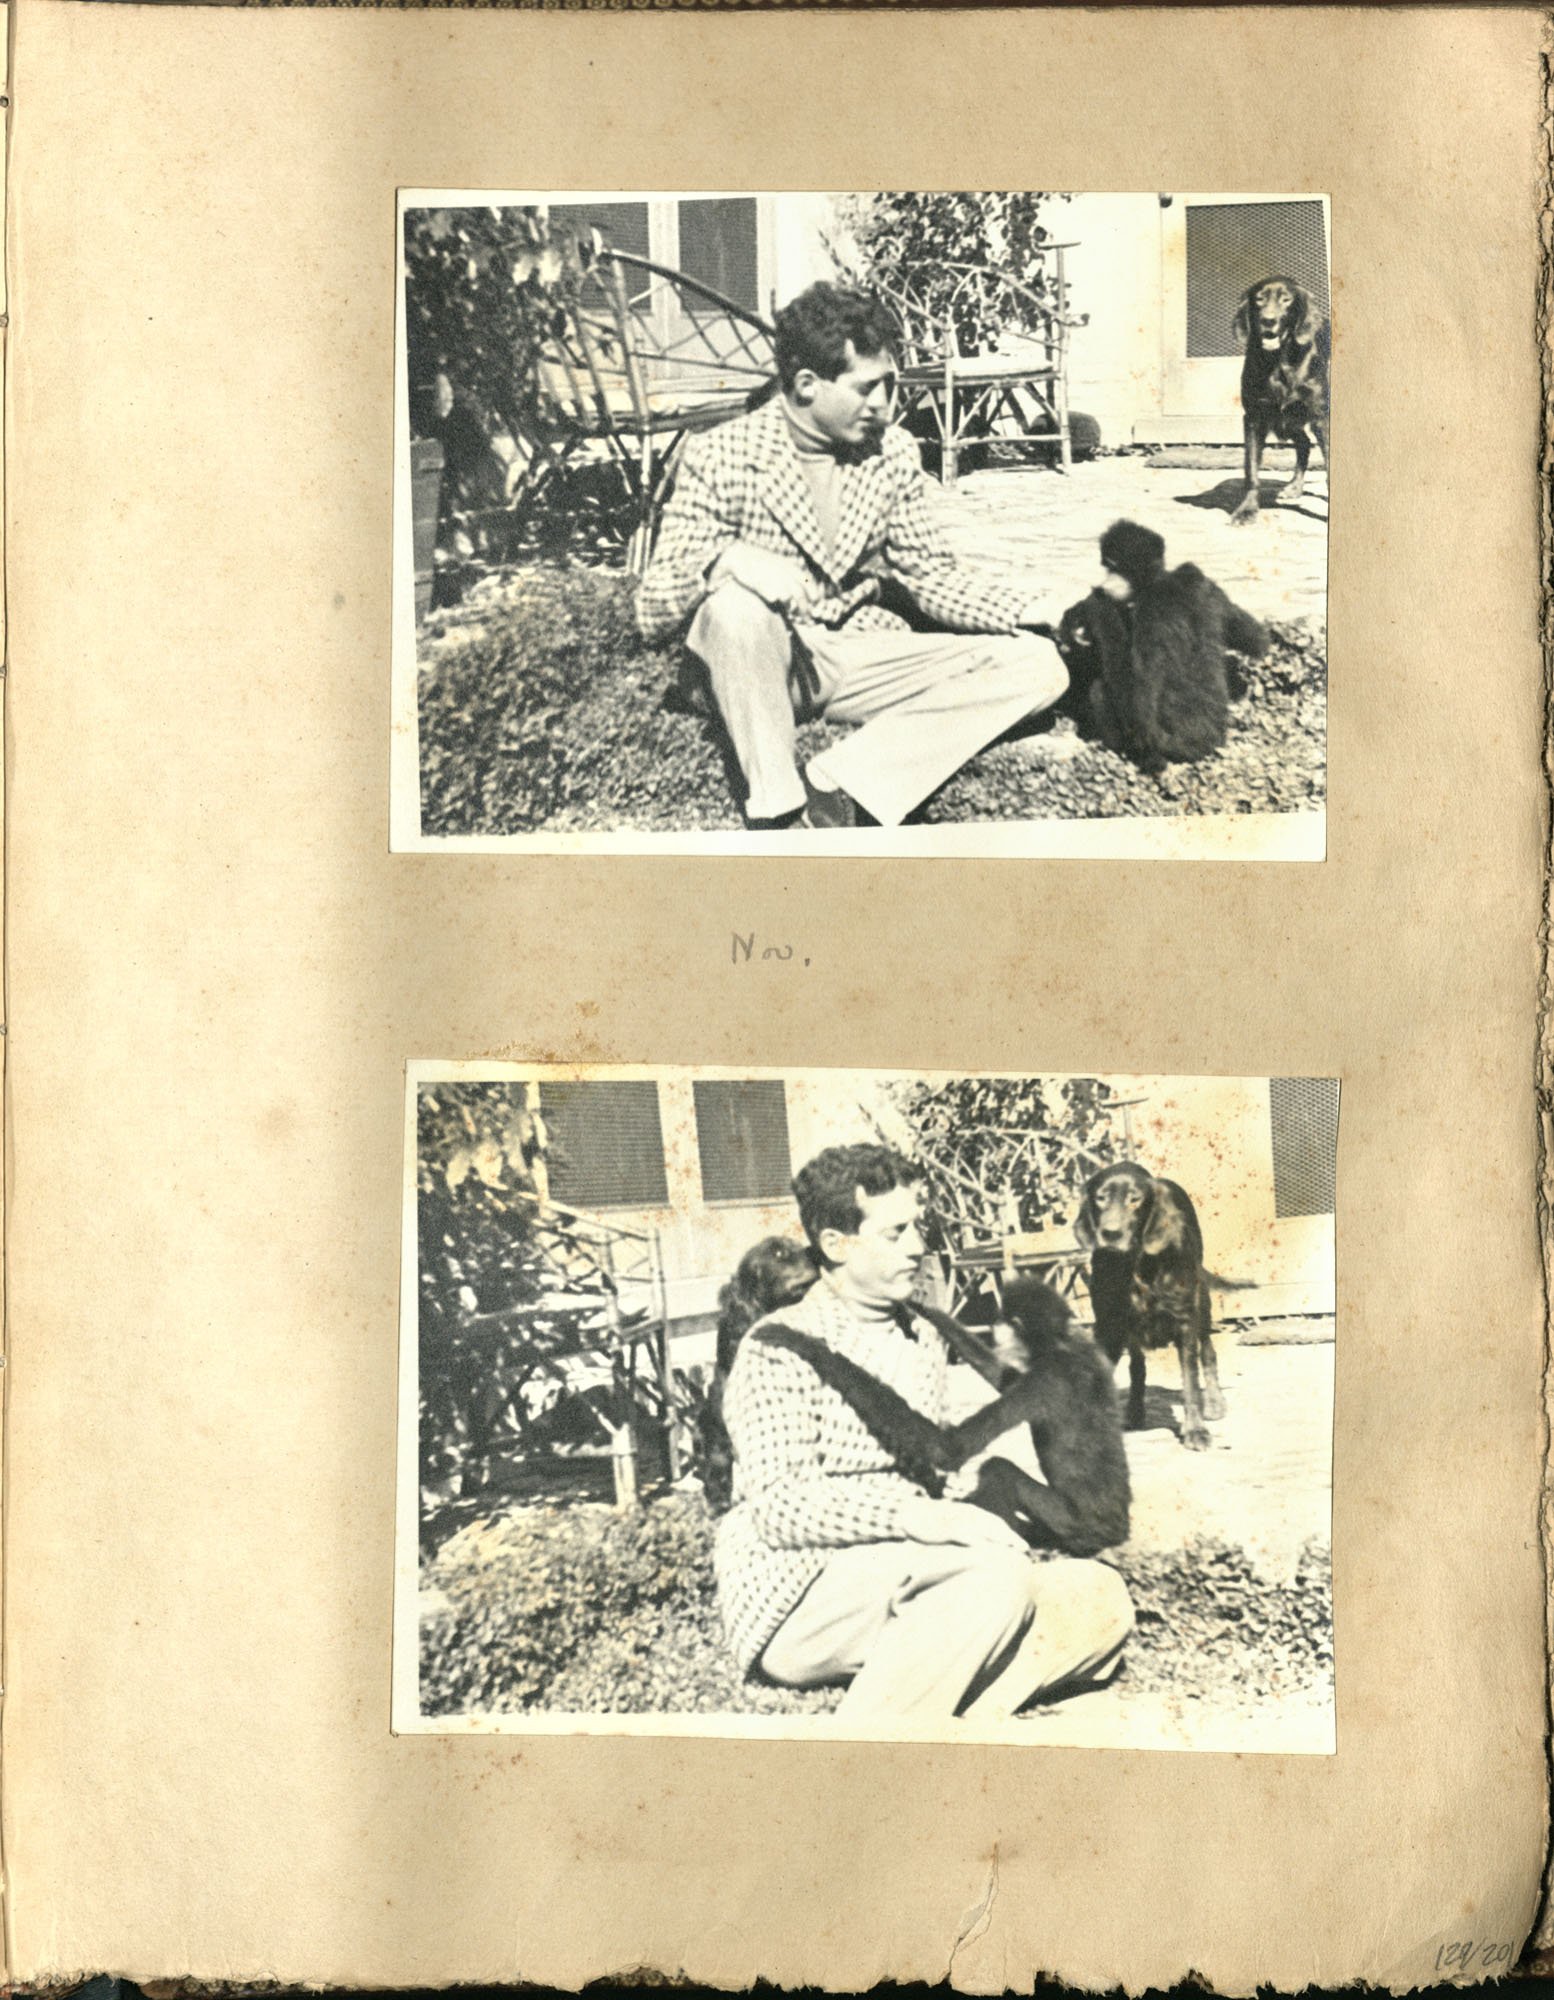 Early Medway and travels album, 1929-1937, page 129